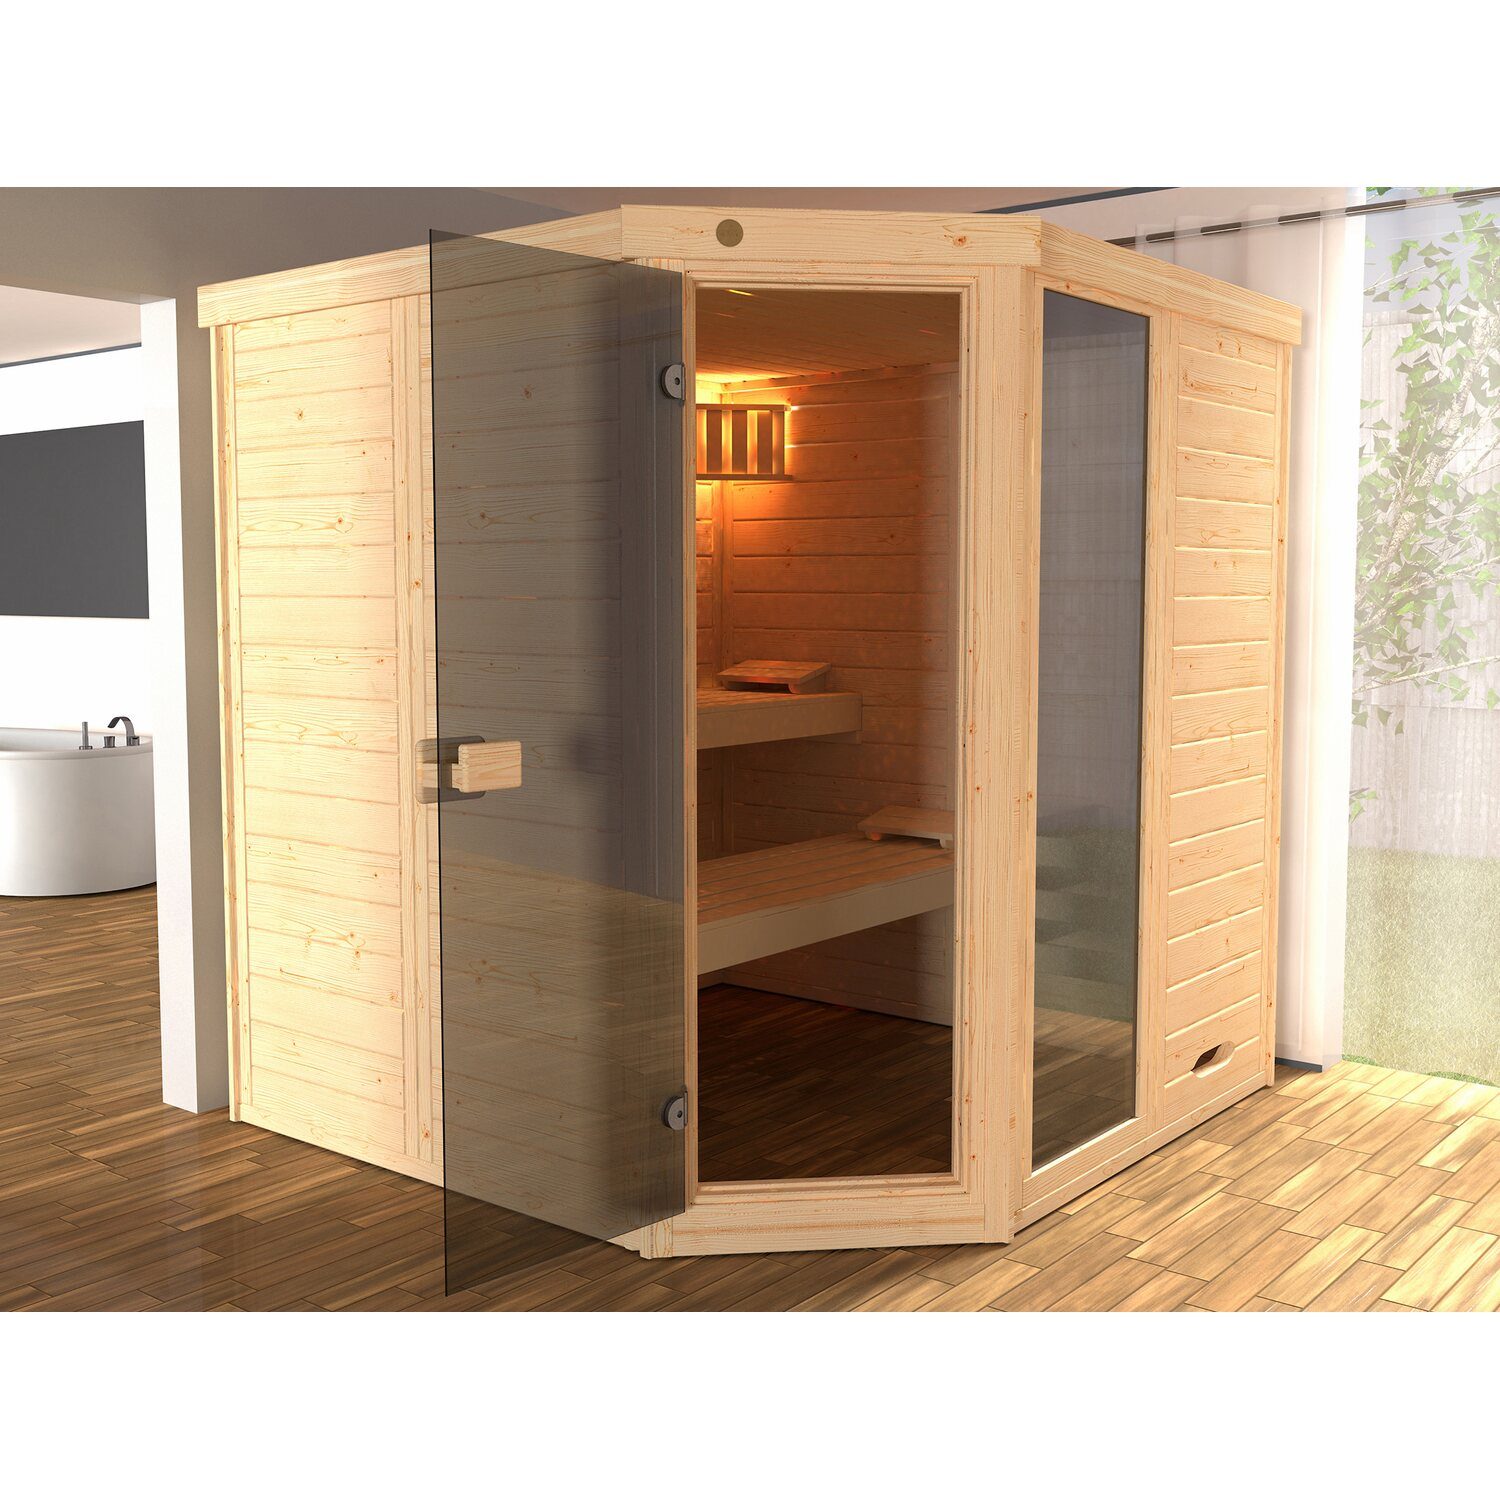 weka massivholzsauna elementsauna laukkala gr 3 glast r. Black Bedroom Furniture Sets. Home Design Ideas